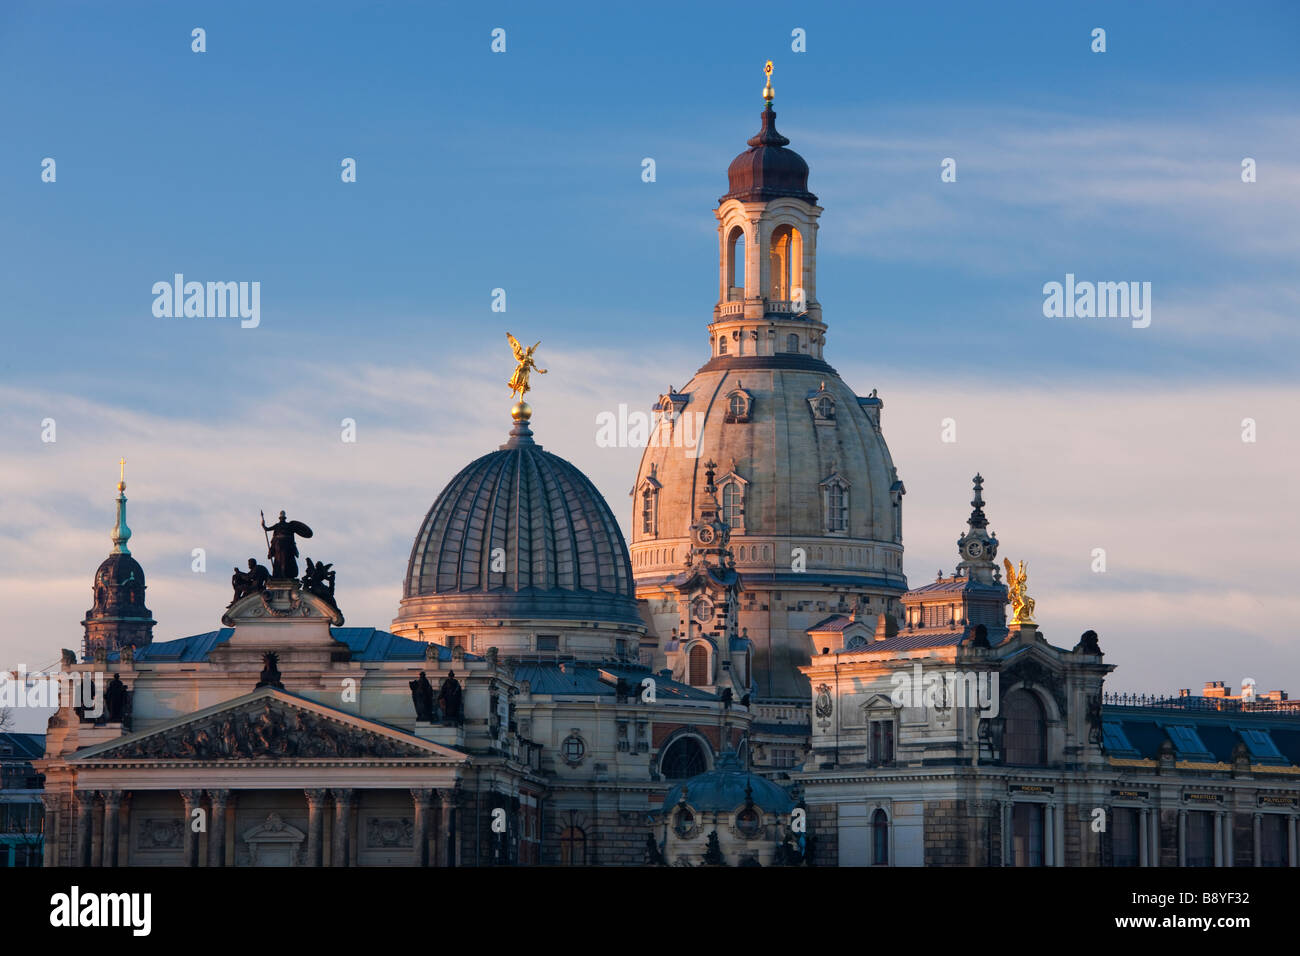 Dome of the Frauenkirche Dresden Saxony Germany Stock Photo